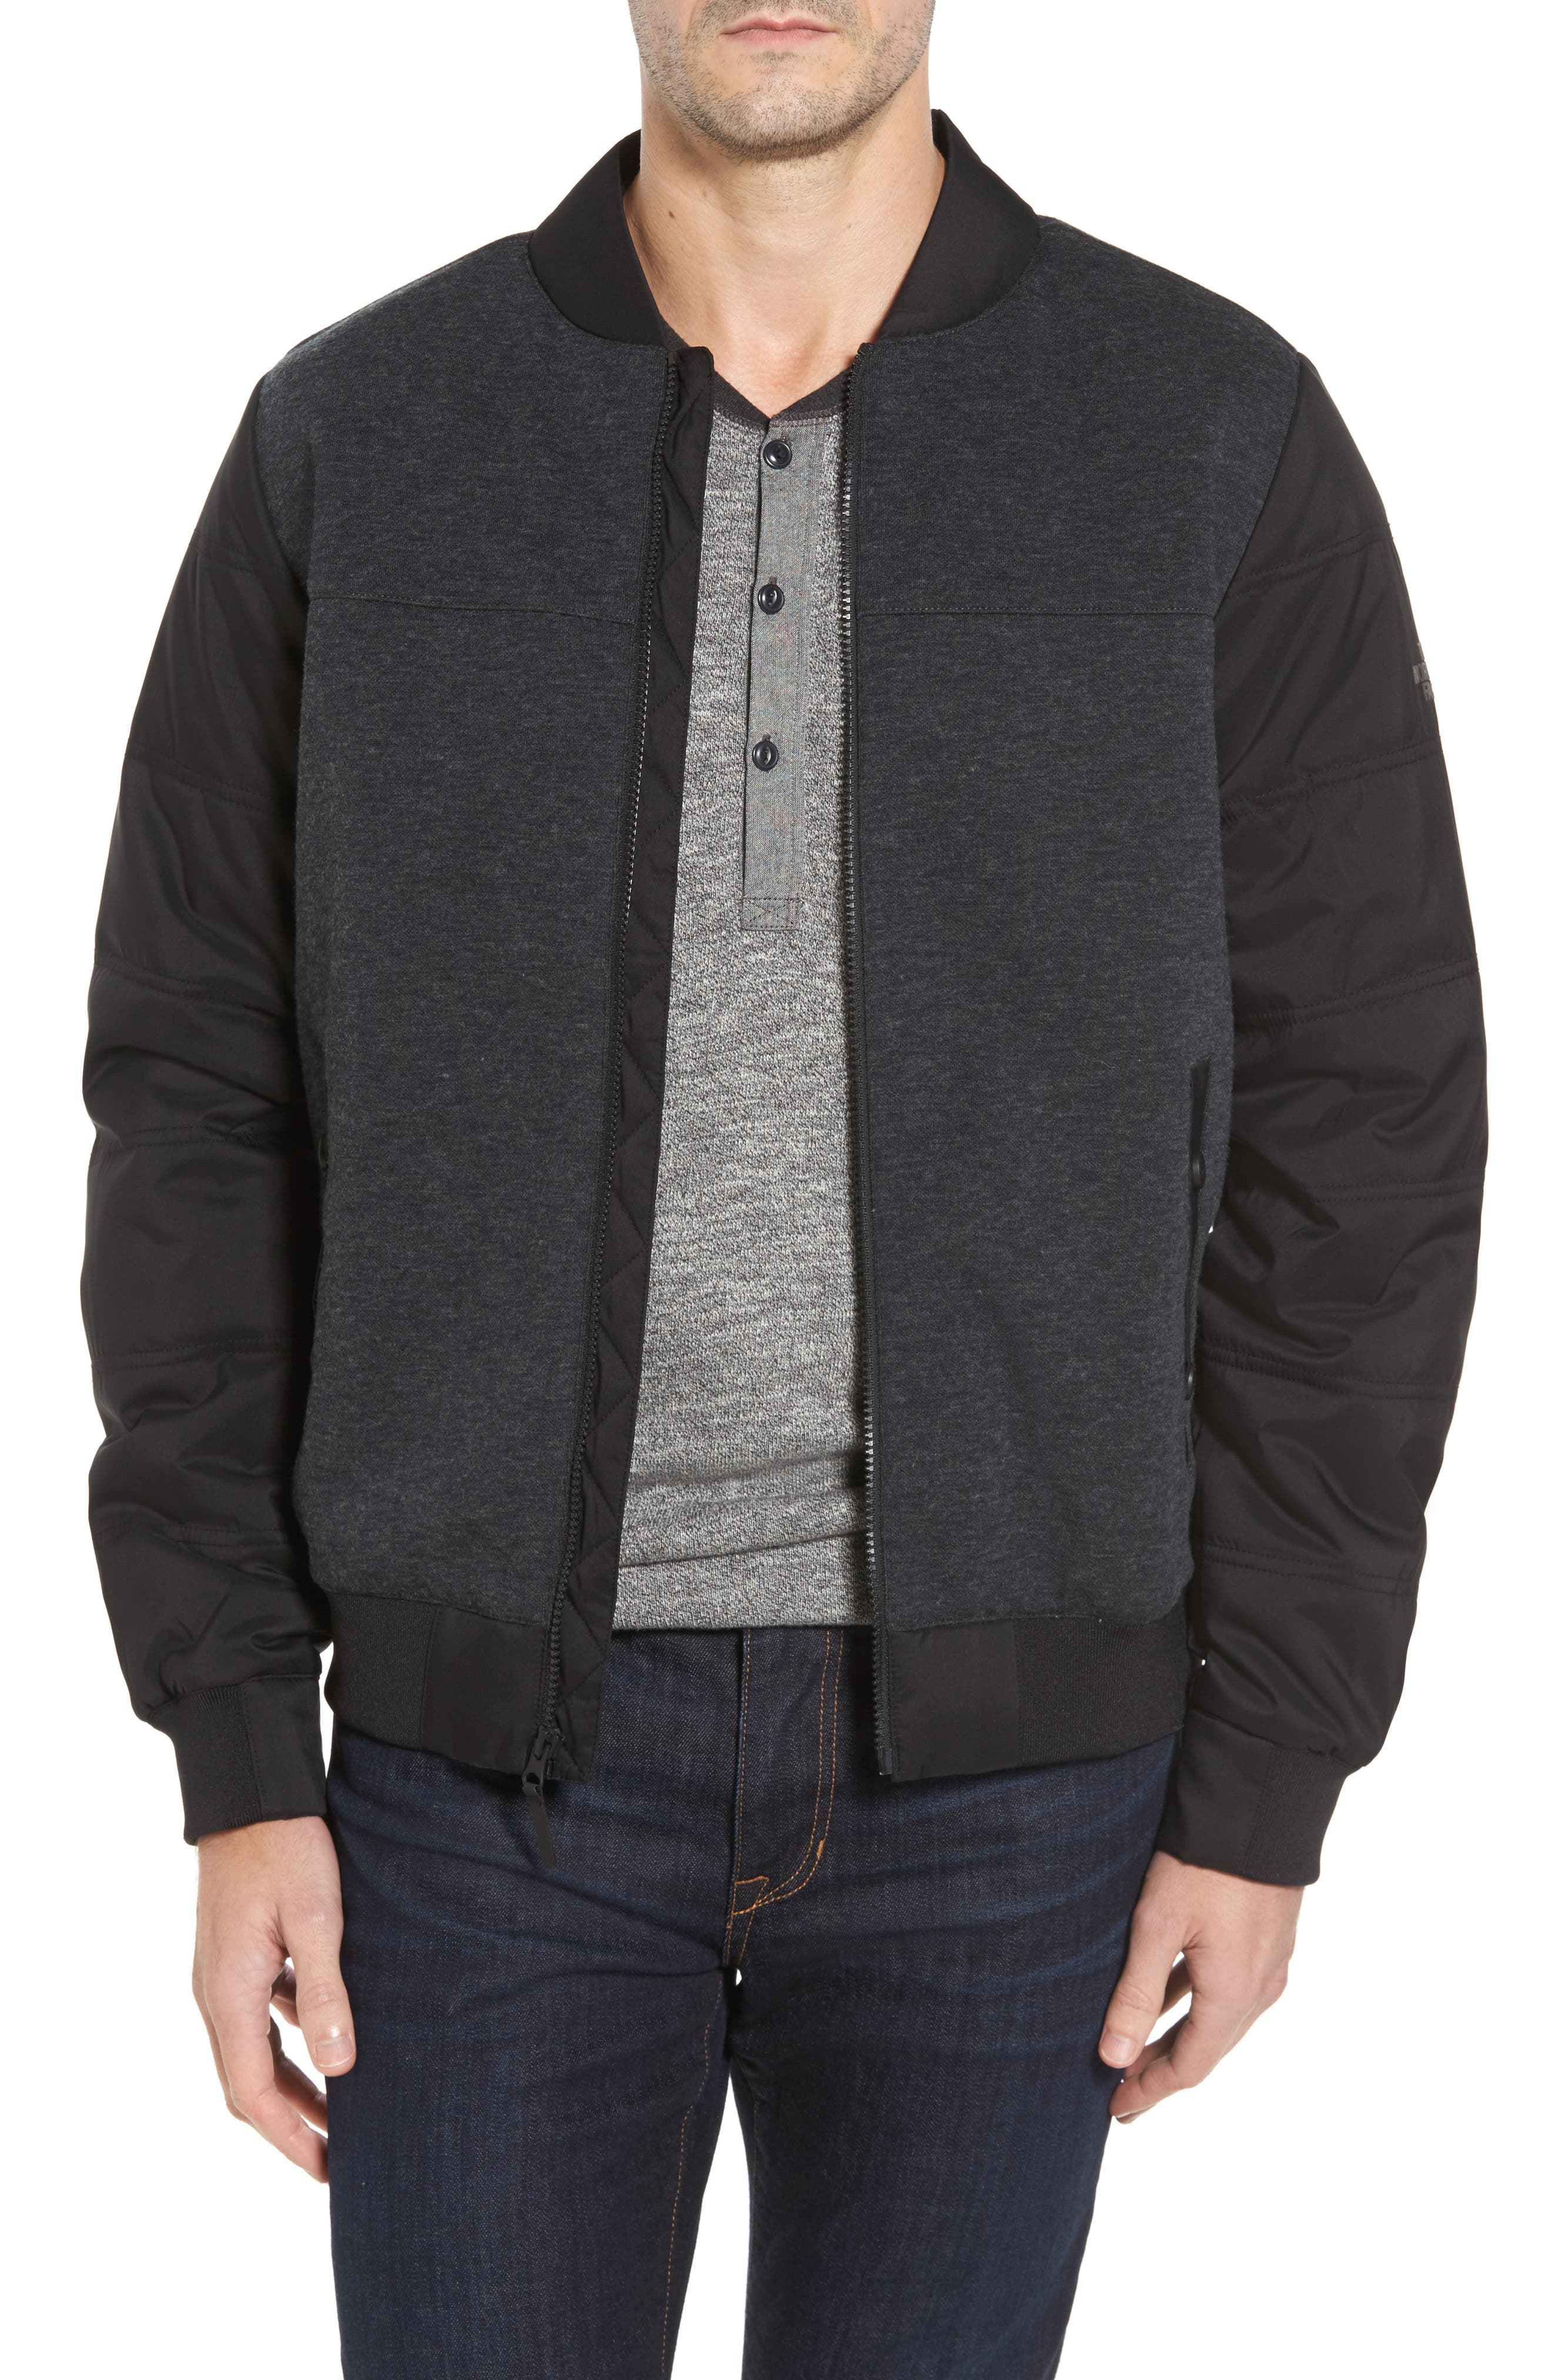 Far Northern Hybrid Bomber Jacket,                         Main,                         color, DARK GREY HEATHER/ BLACK